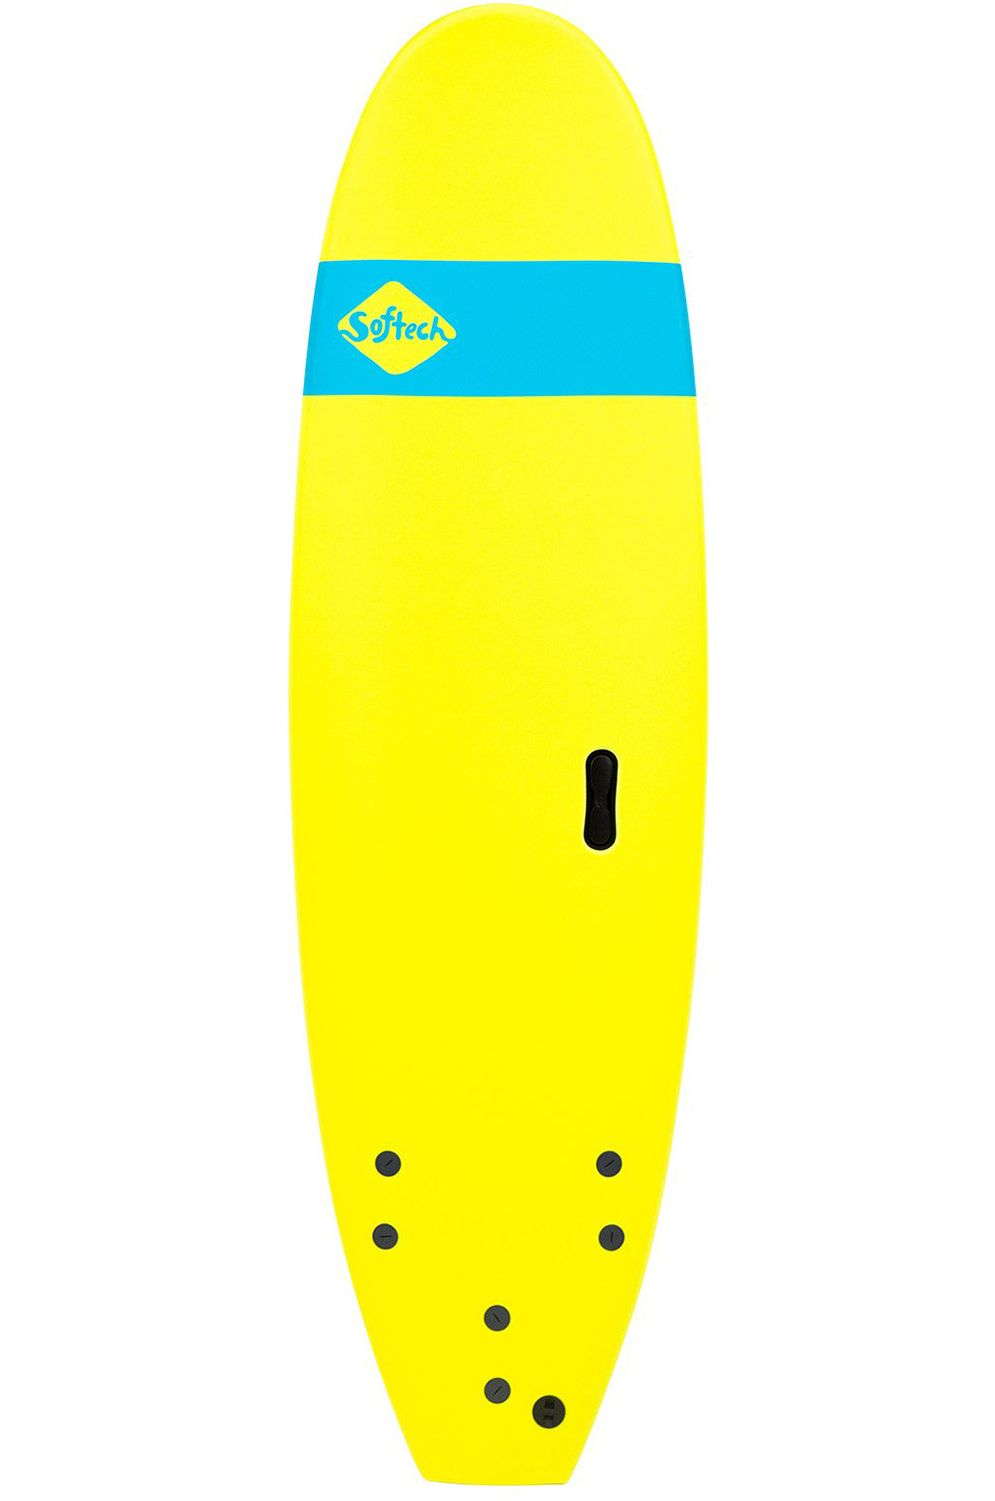 Softech Surf Board 6'0 ROLLER ICE YELLOW Square Tail - Color FCS 6ft0